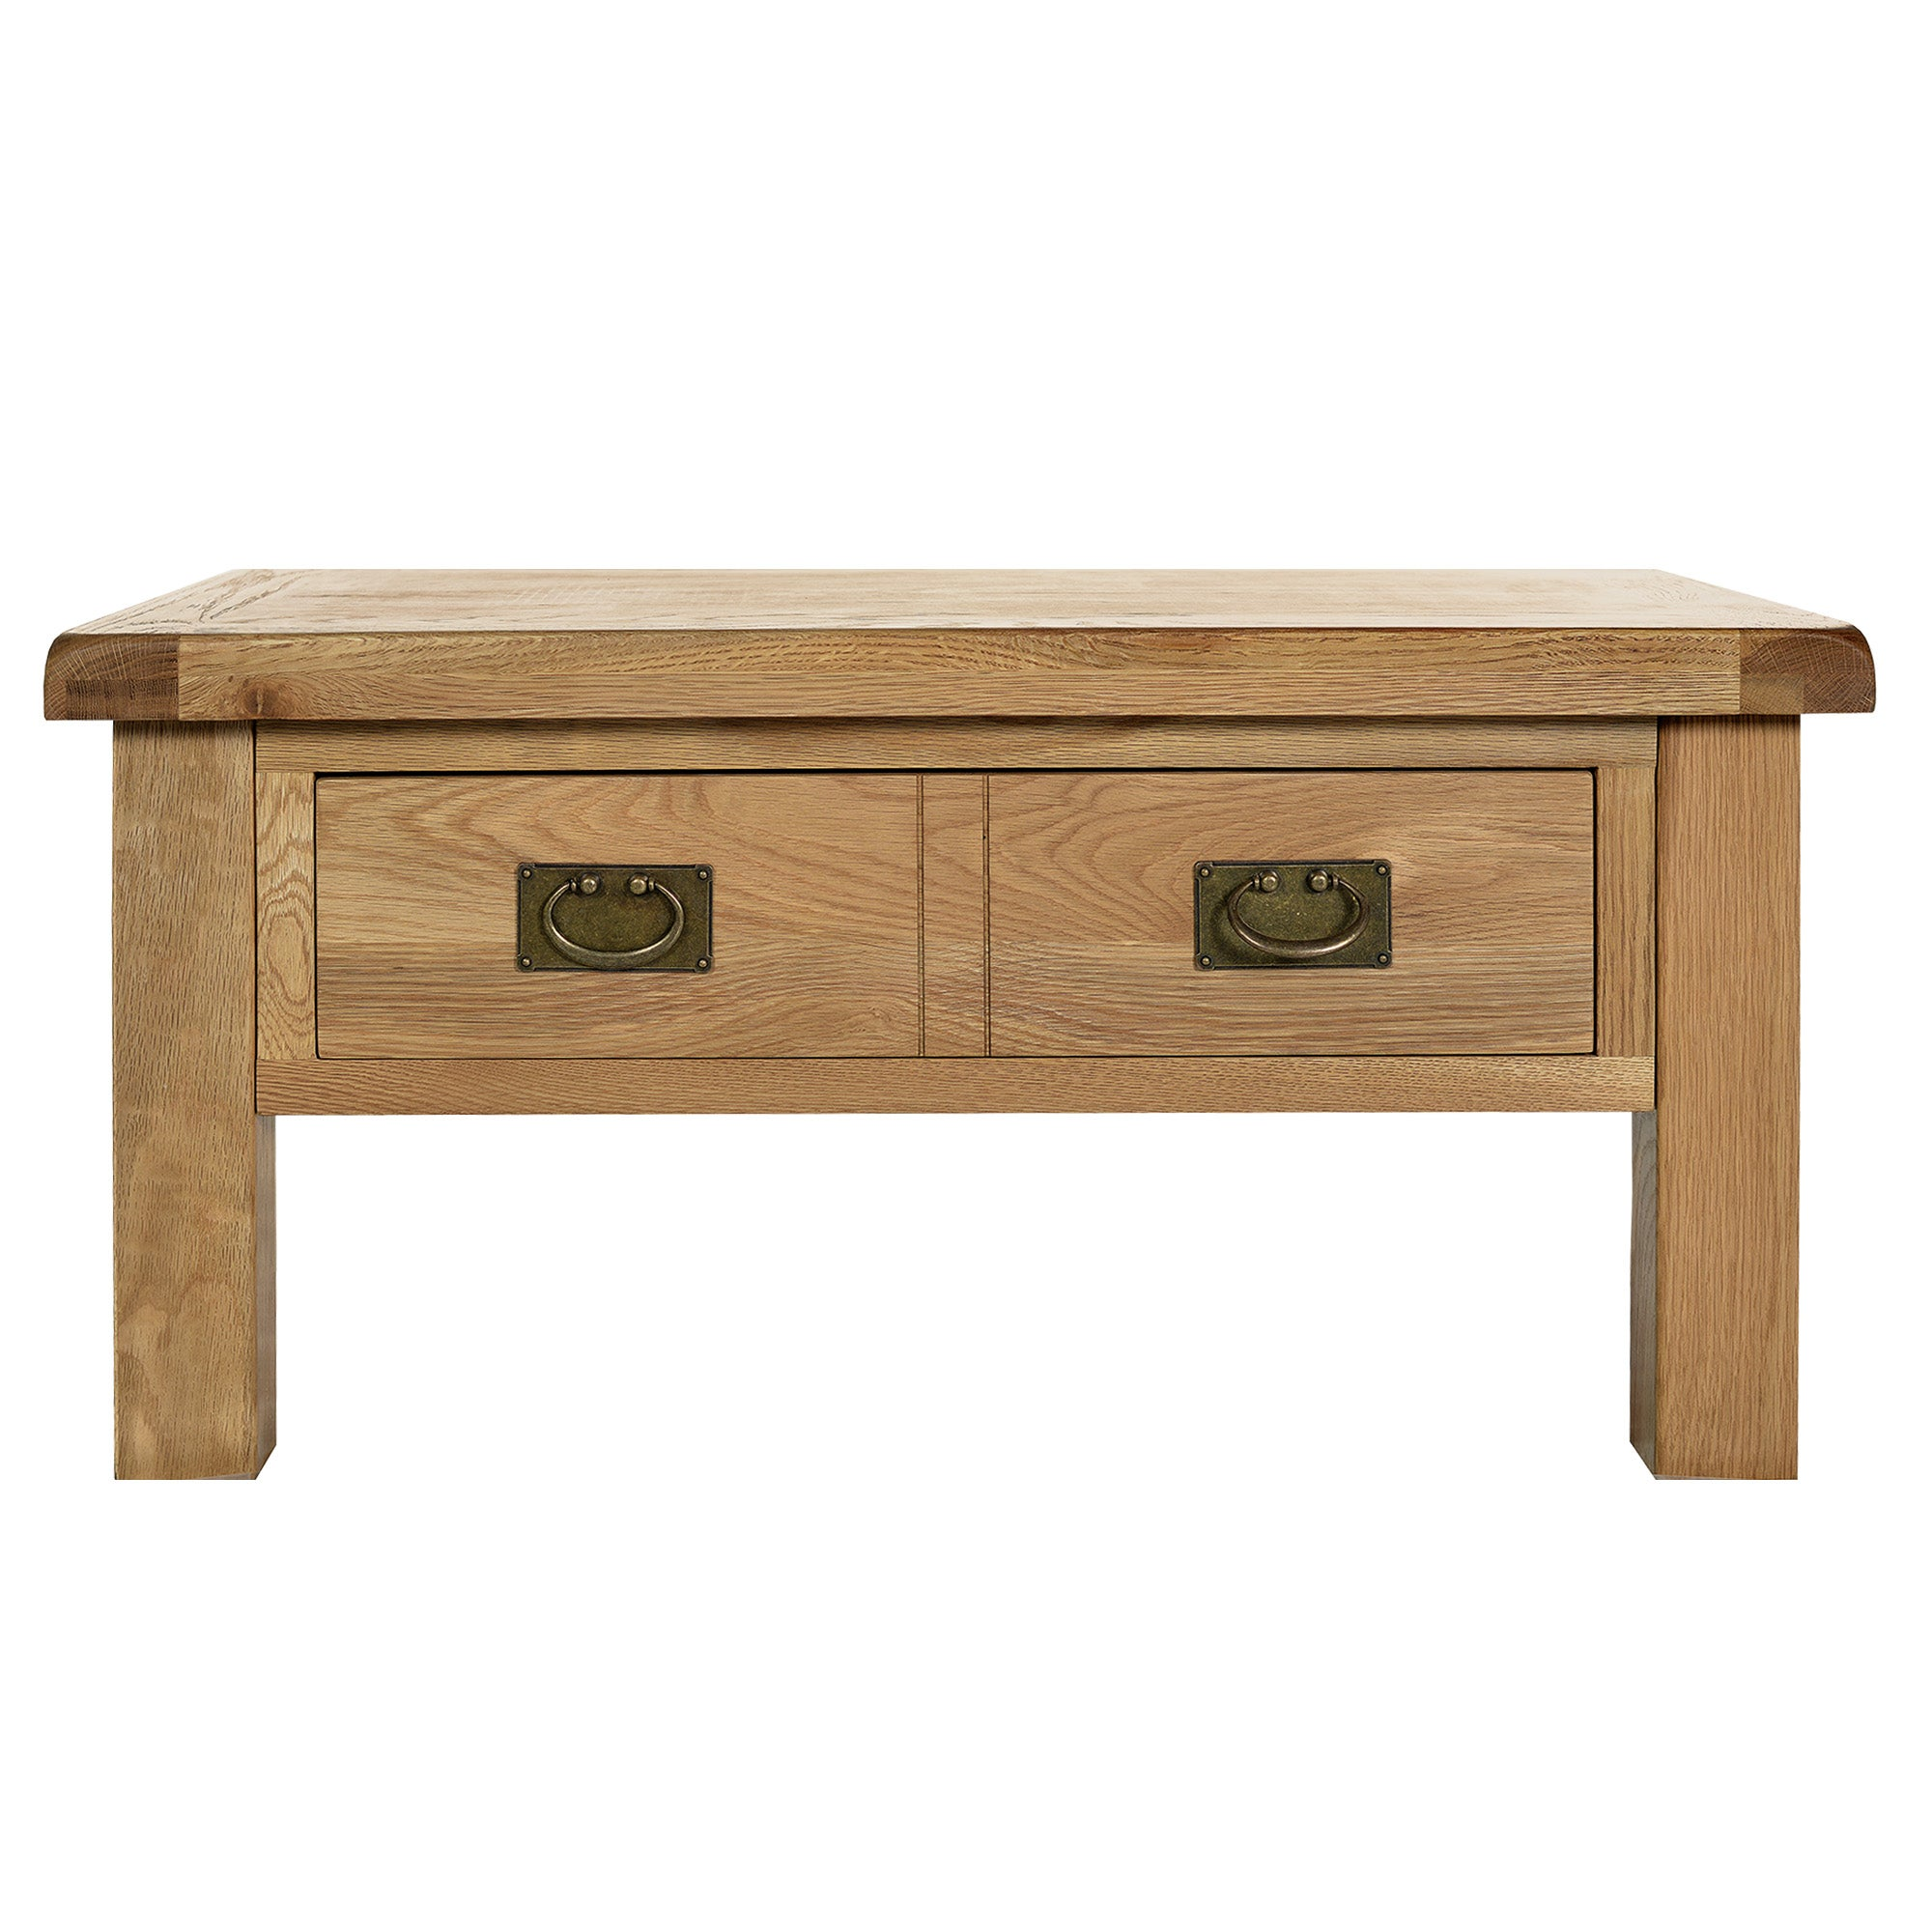 Aylesbury Oak Coffee Table with Double Drawer